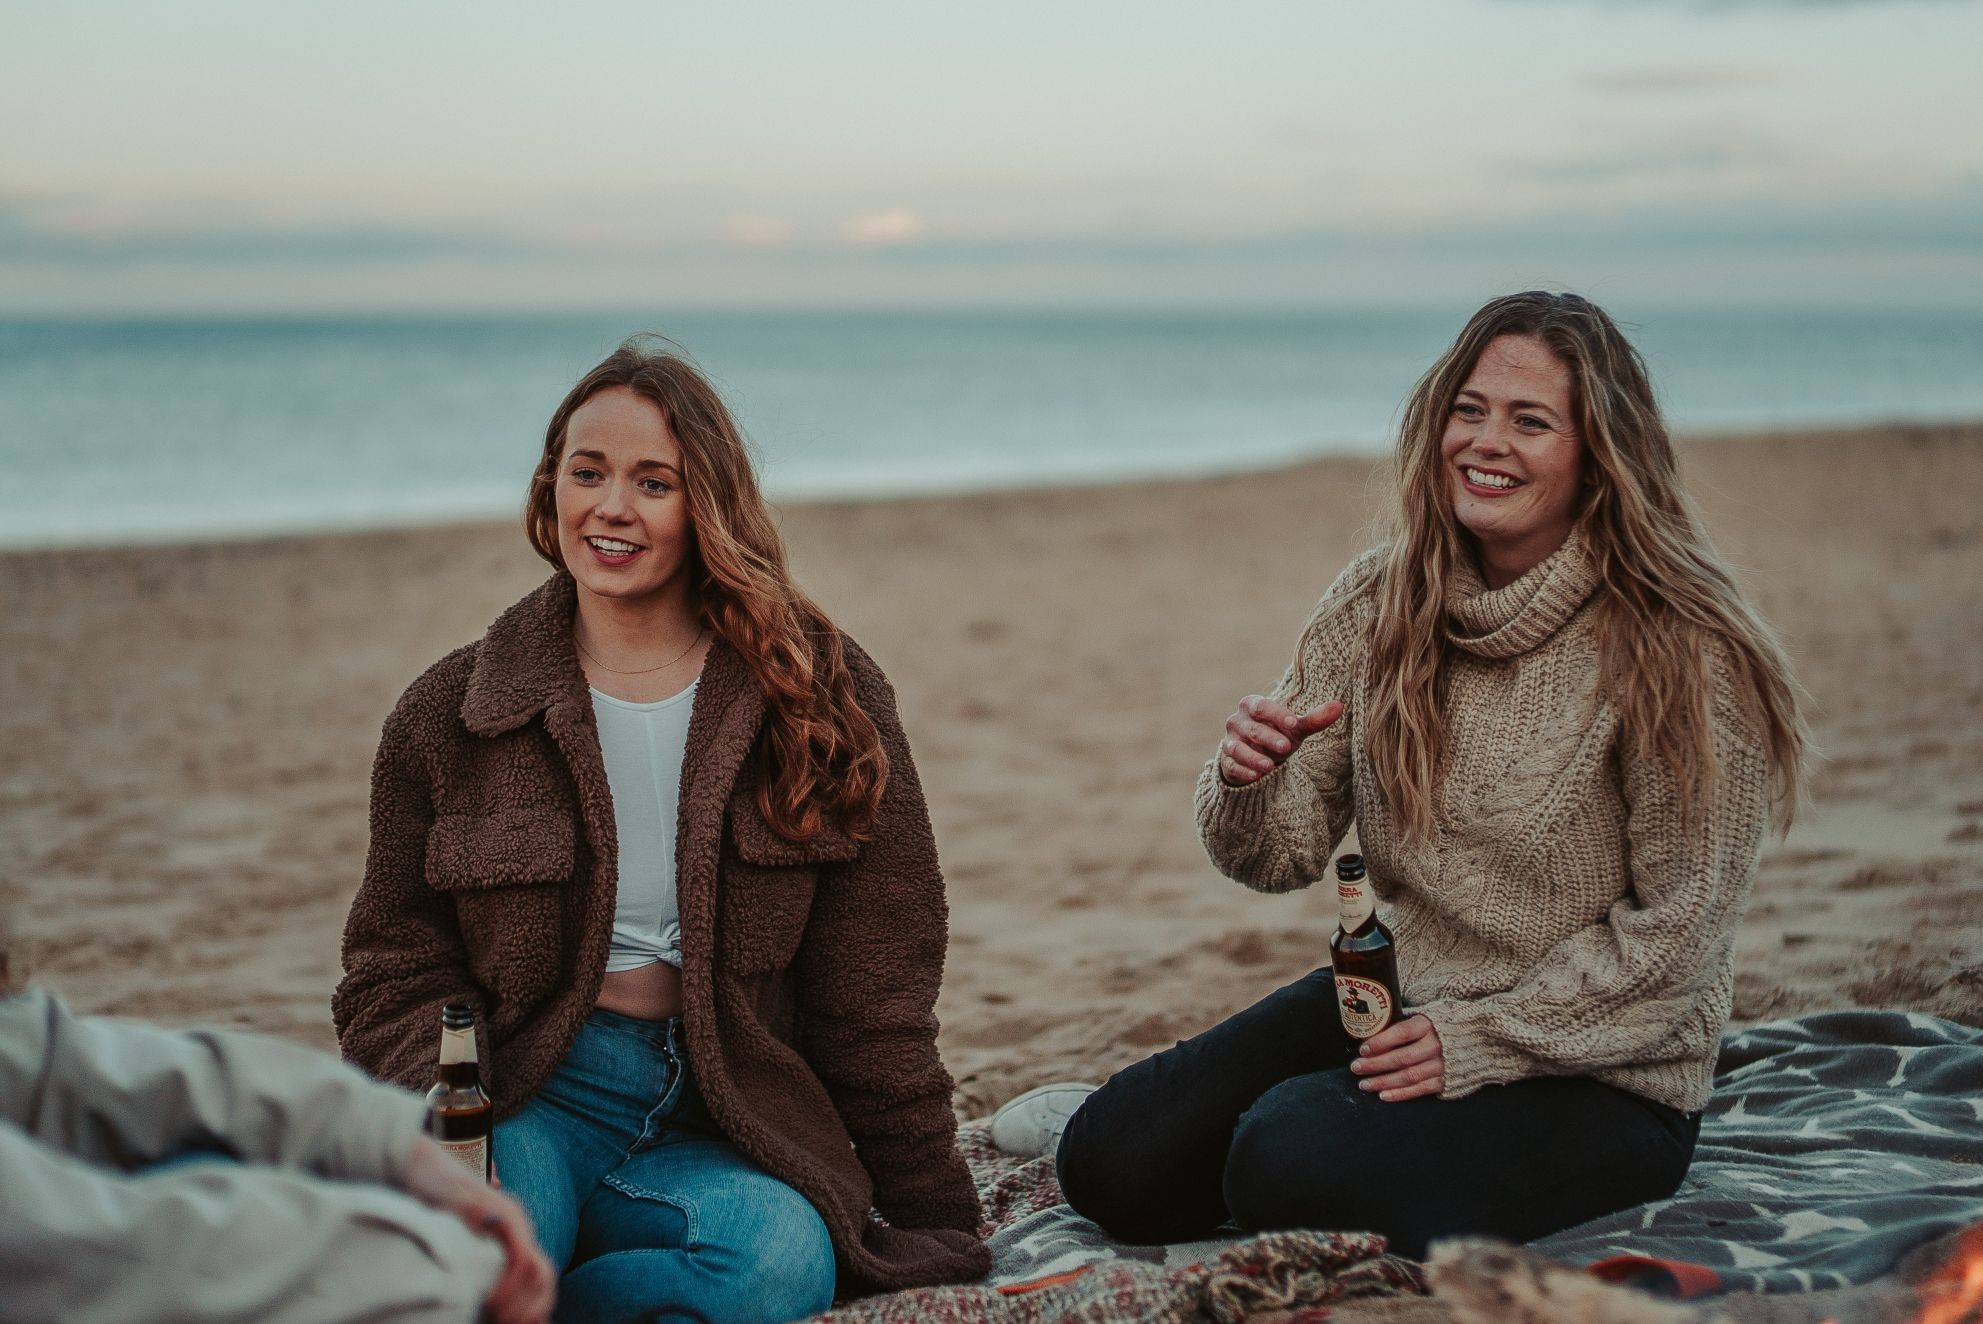 Image of two girls laughing on beach